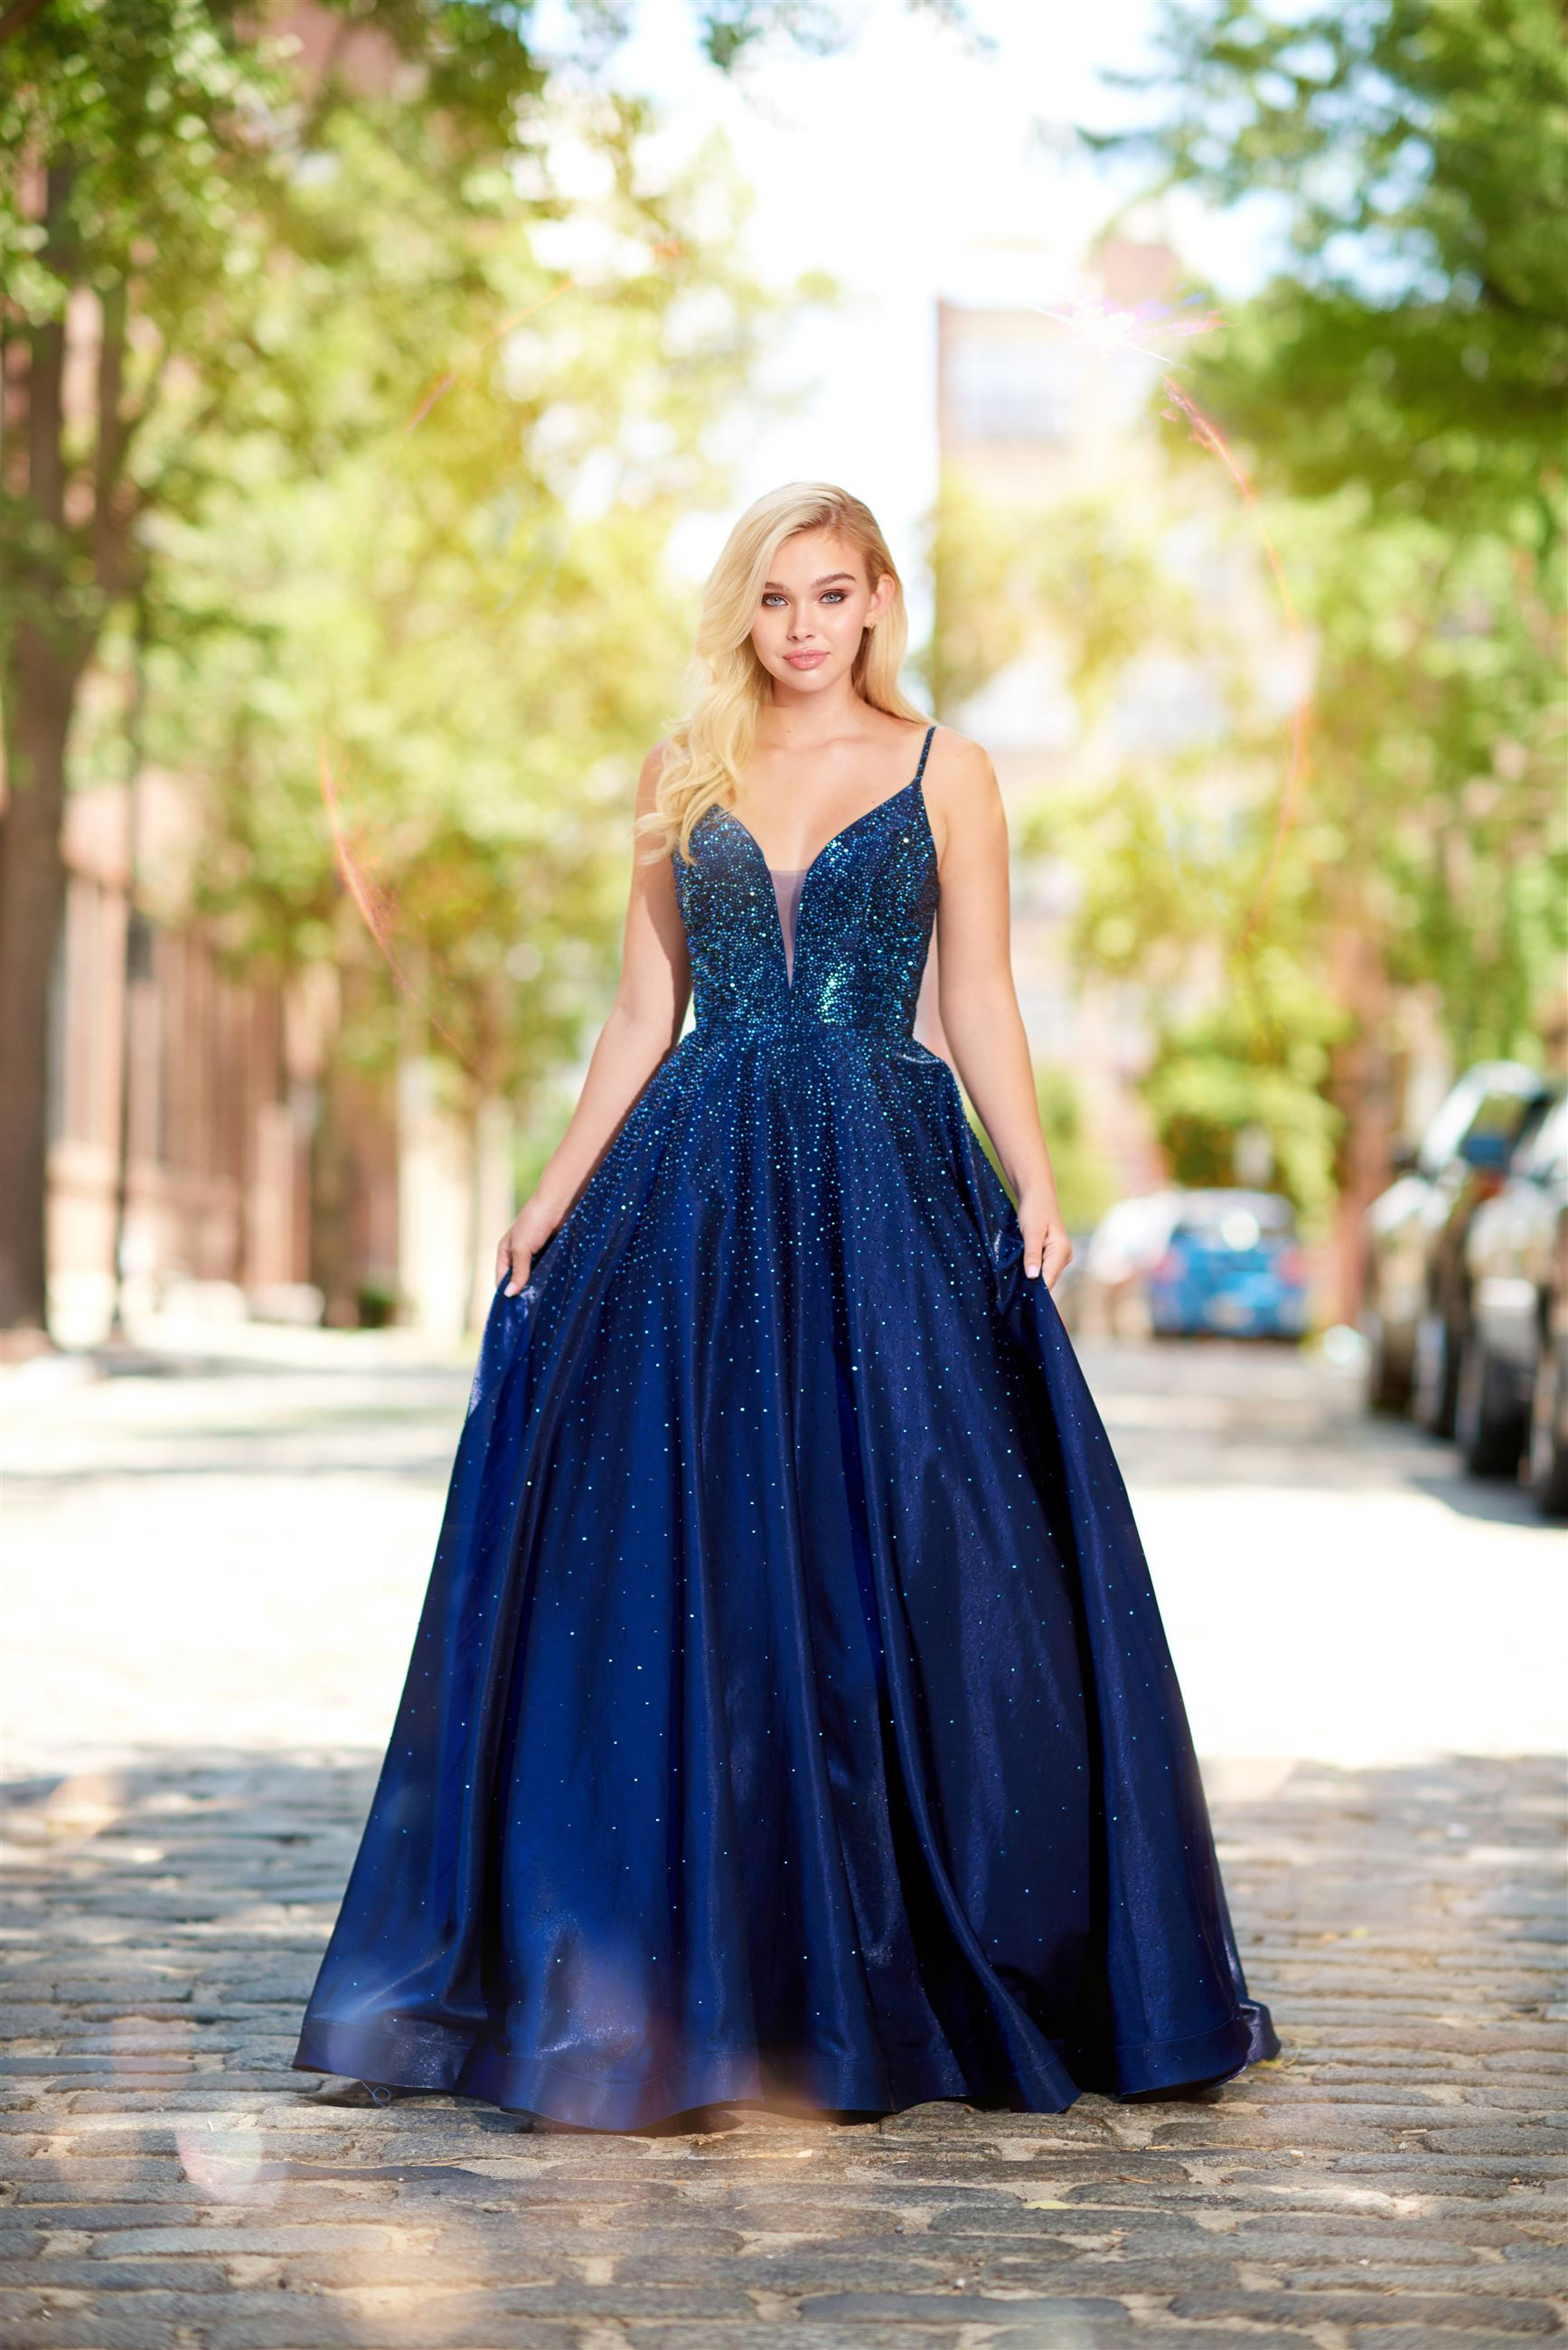 Girl wearing navy blue prom dress with sequin details by Ellie Wilde